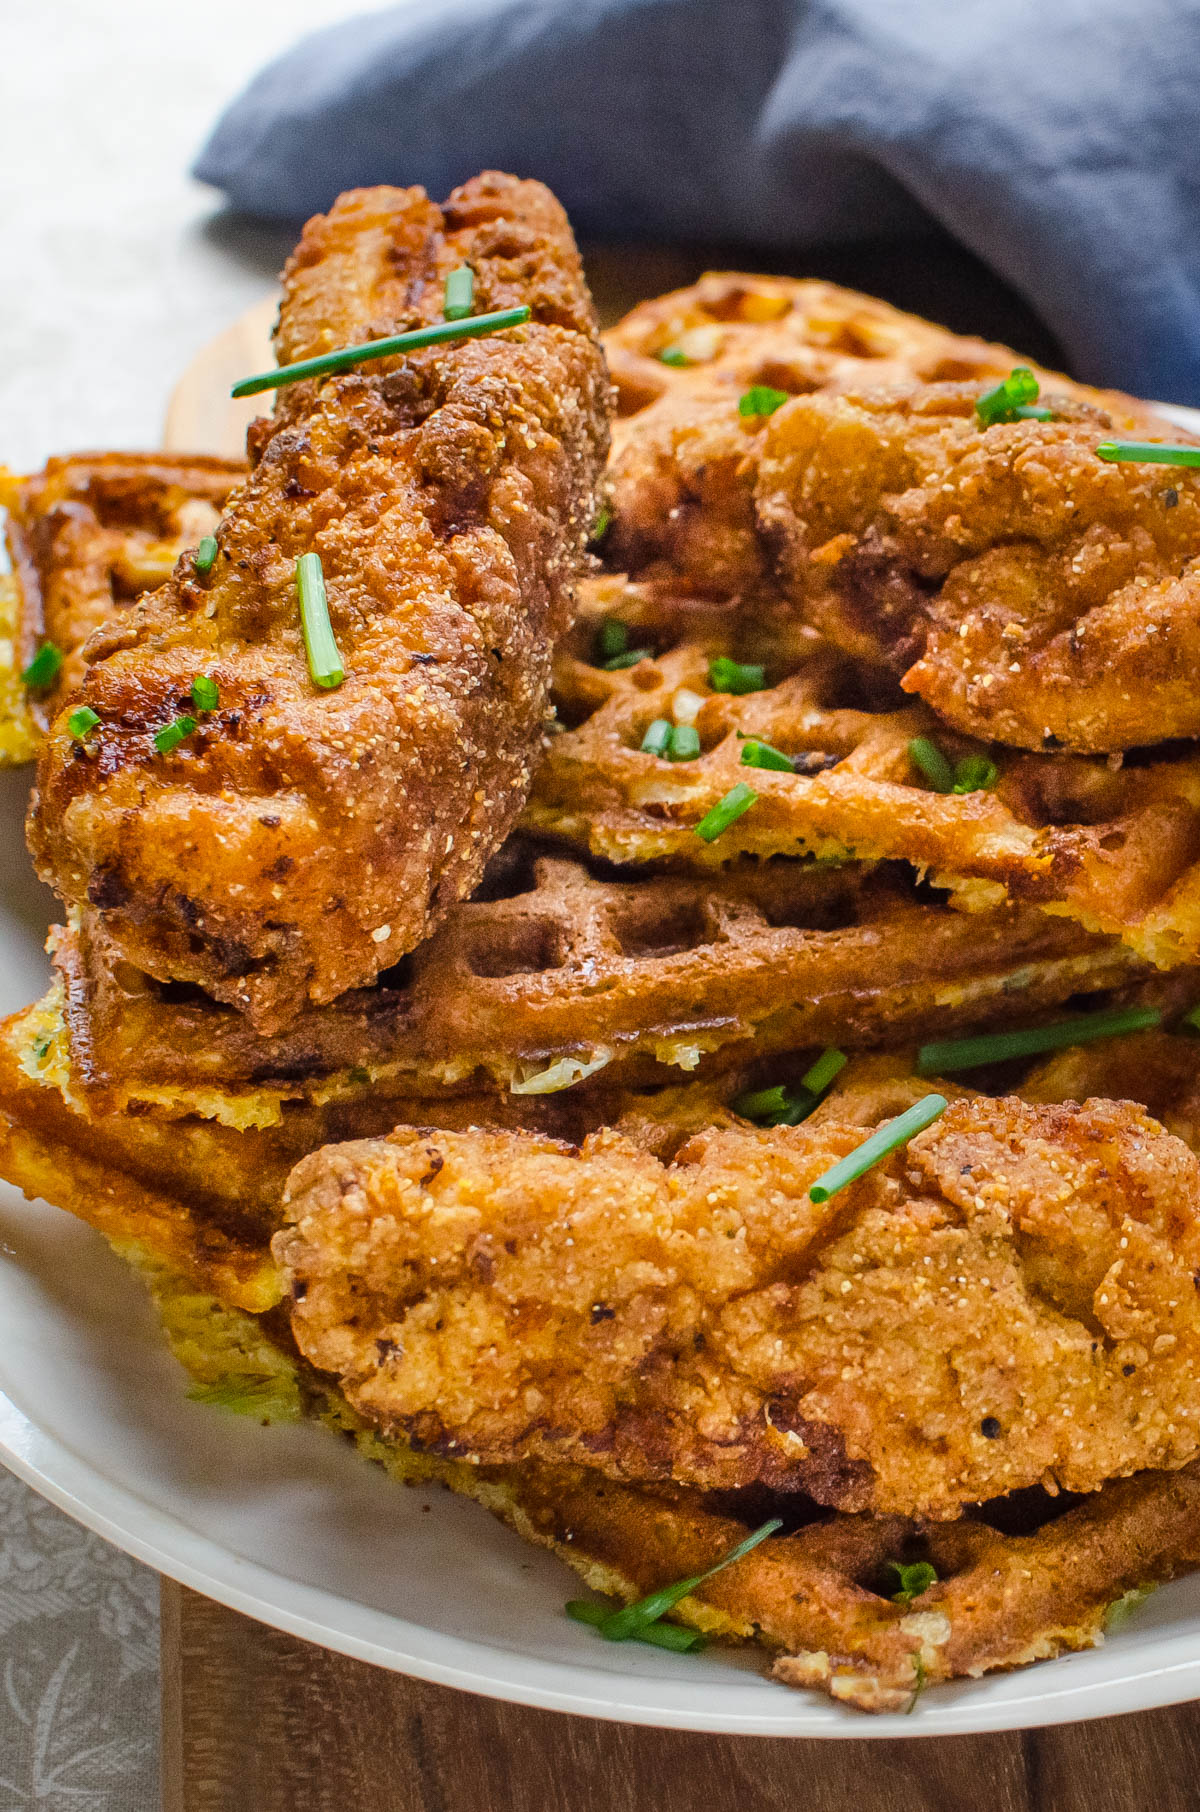 a stack of southern fried chicken and waffles on a plate.